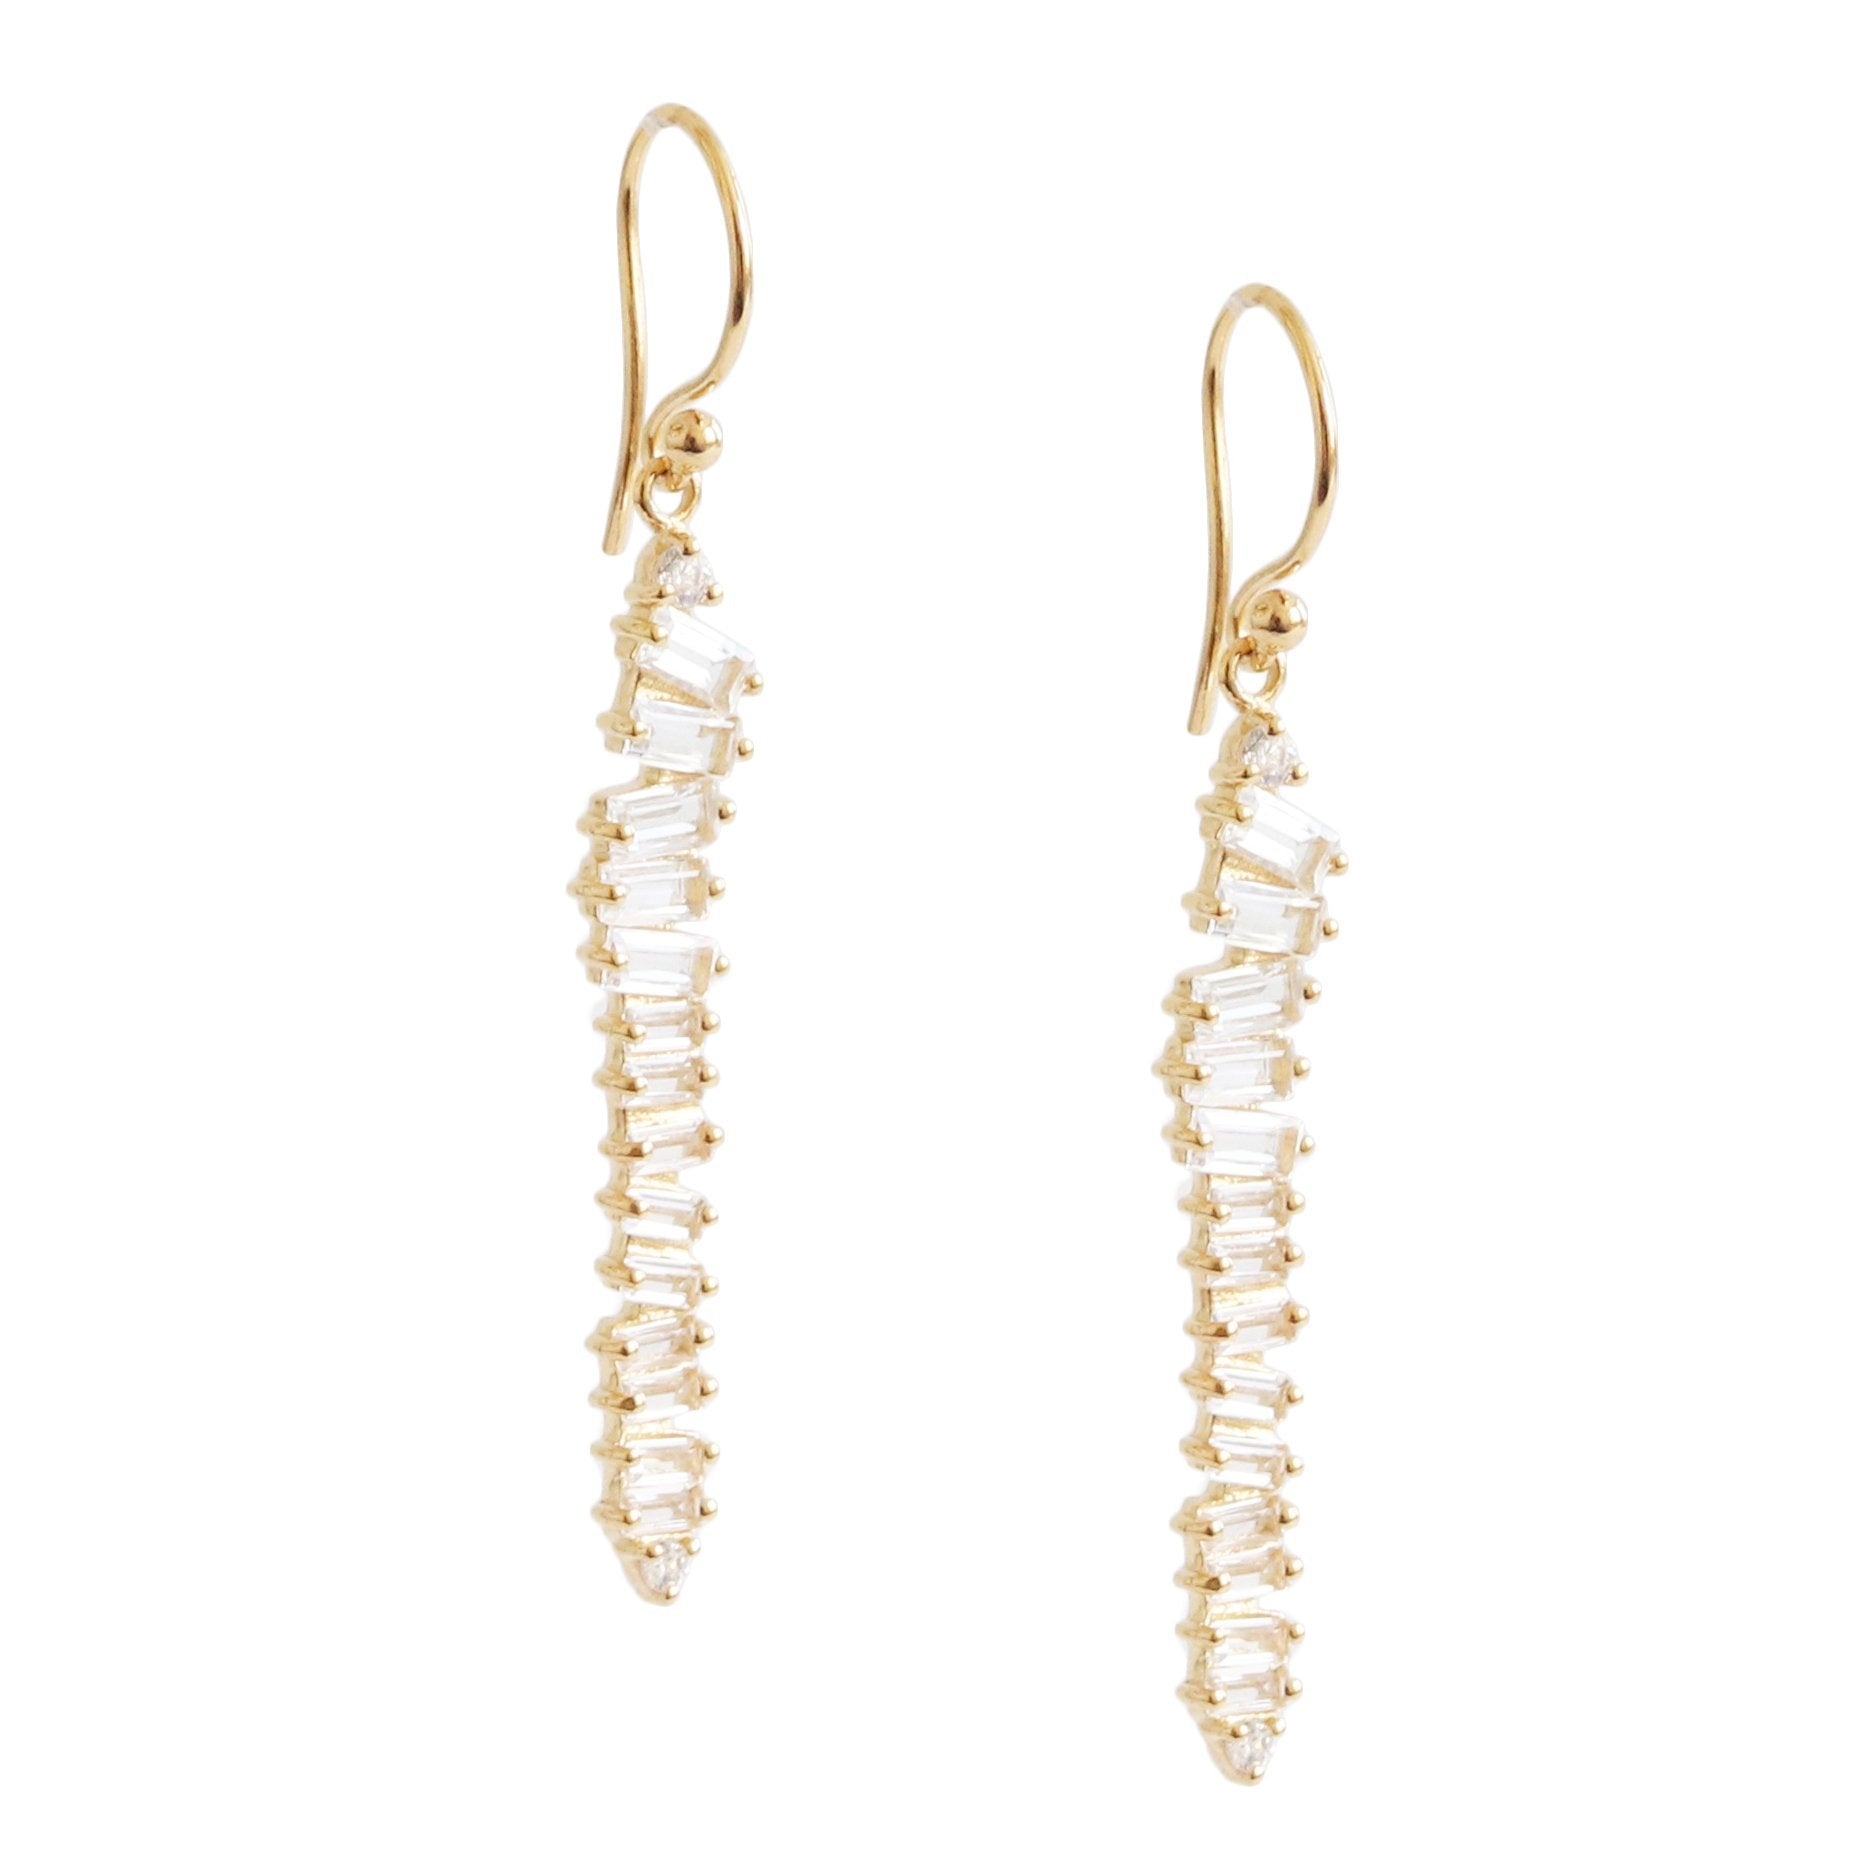 Loyal Waterfall Drop Earrings - White Topaz, Cubic Zirconia & Gold - SO PRETTY CARA COTTER